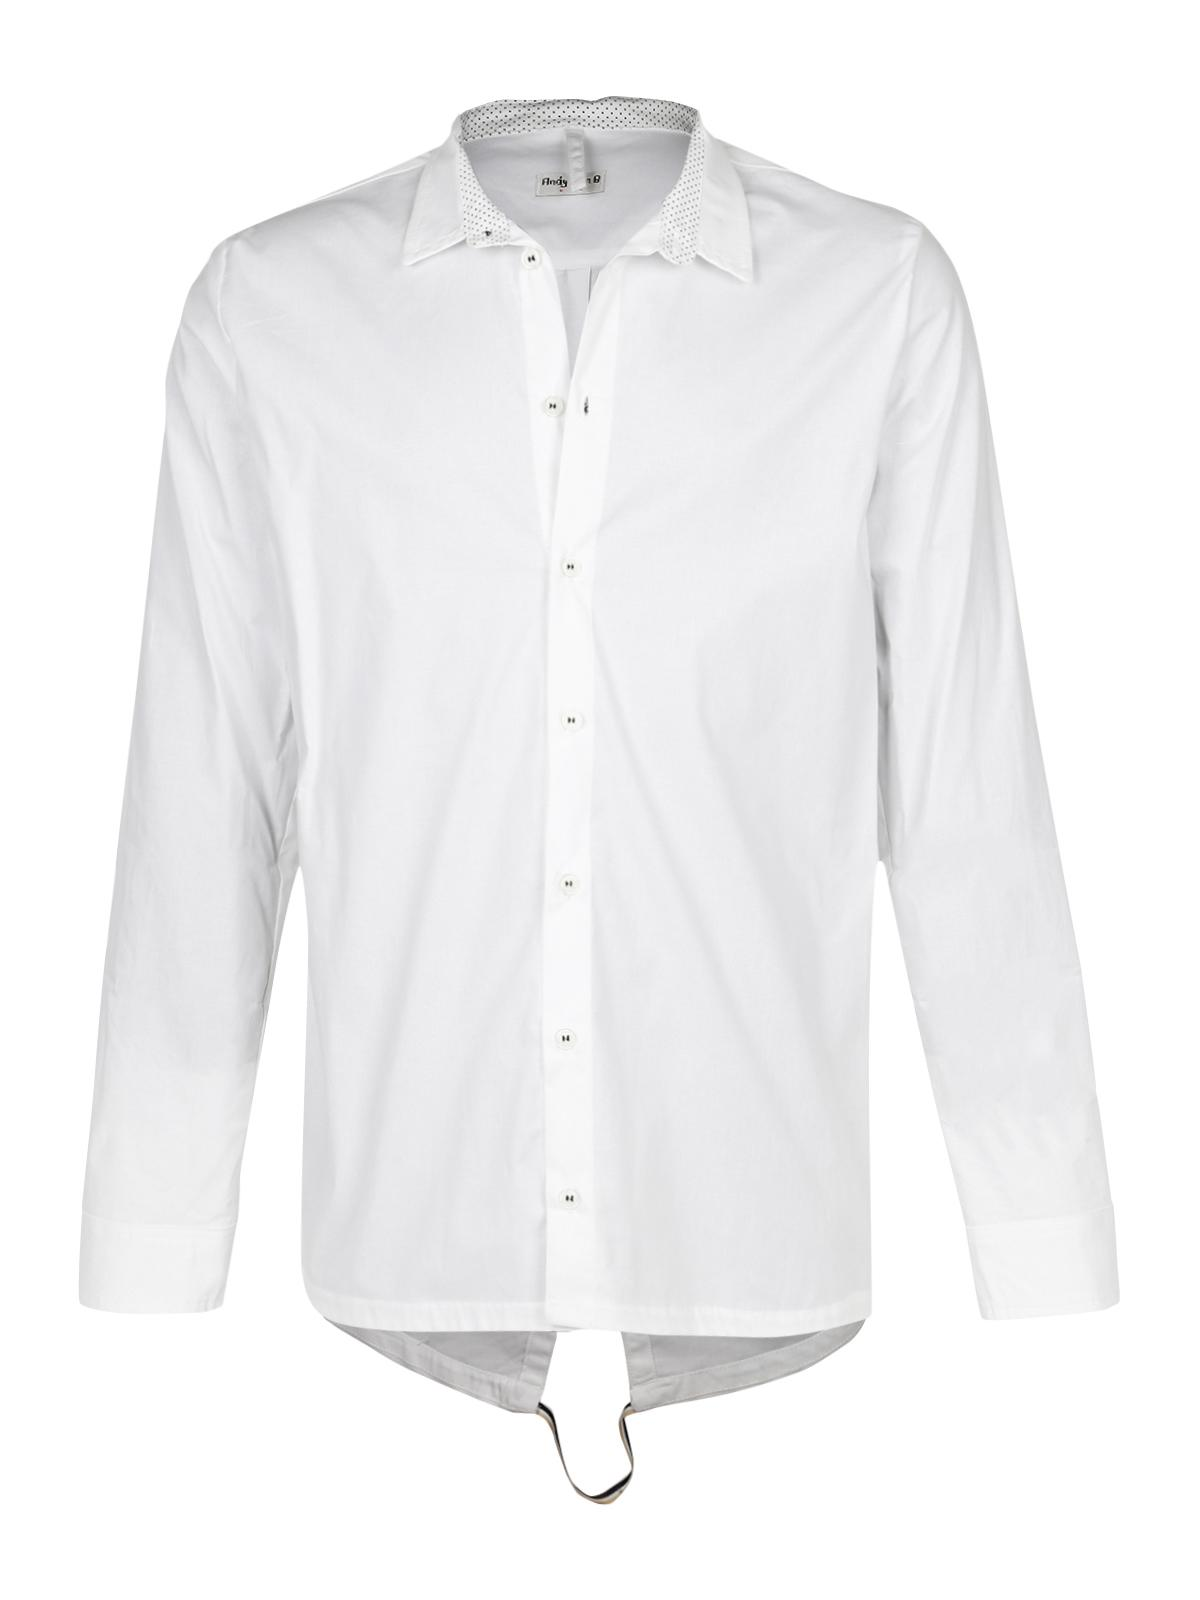 best sneakers 65dc9 cac03 Camicia uomo a maniche lunghe andy don b   MecShopping